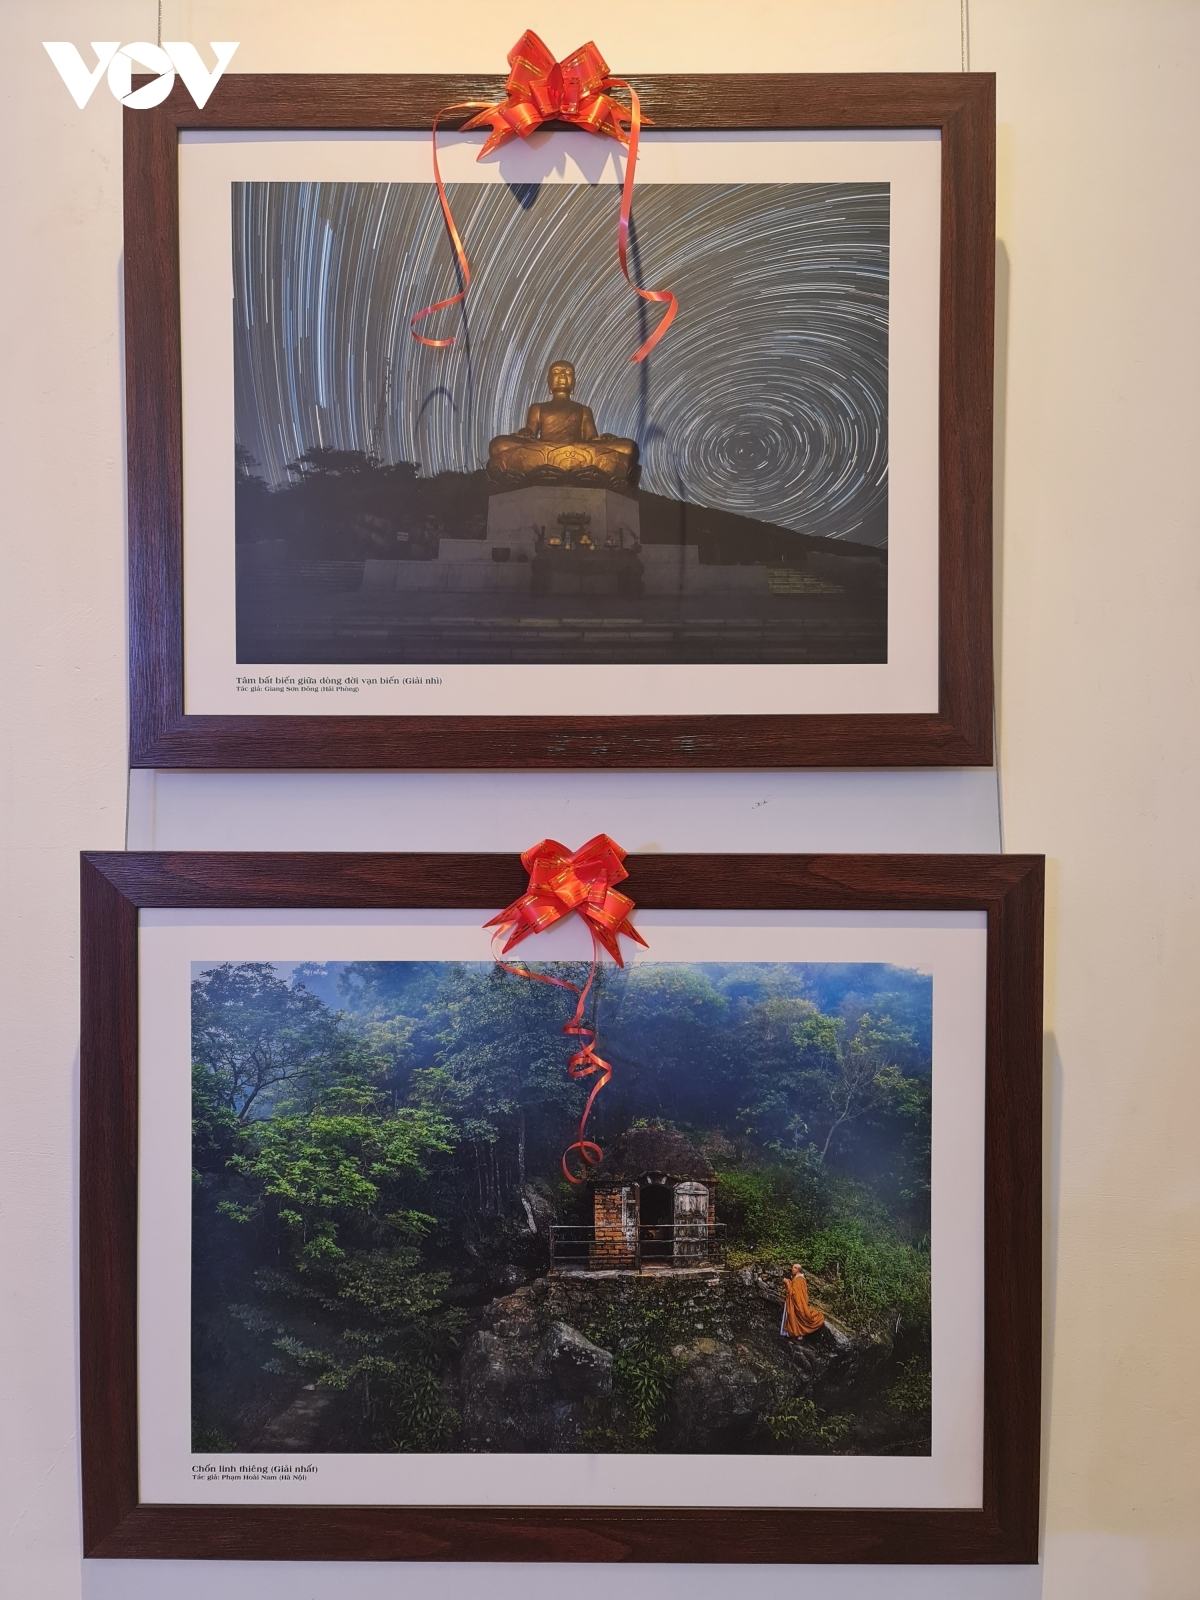 By putting on the exhibition the Vietnamese Buddhist Sangha hope that the photos can serve to promote images of various sightseeing spots, historical relic sites, and the culture of the Vietnamese Buddhism to both domestic and international tourists.